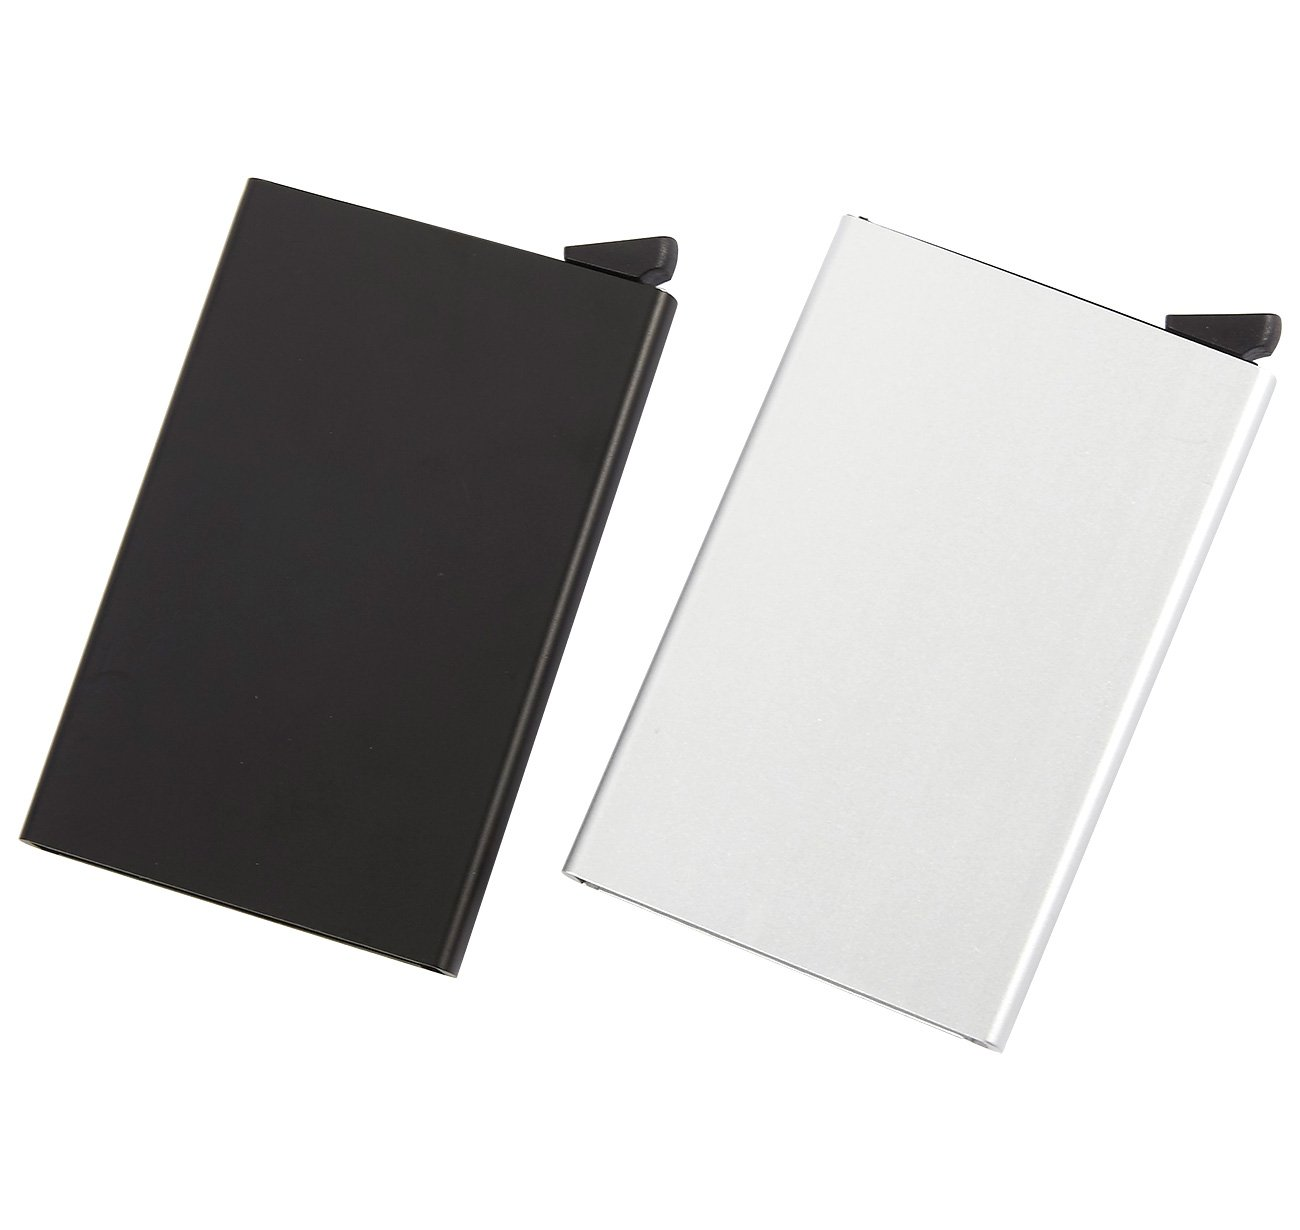 RFID Blocking Minimalist Wallet – 2 Pack Aluminum Credit Card Holder, Smart Wallet for Business Card, ID License, and Money Clipping, Black and Silver, 4 x 2.5 x 0.25 Inches